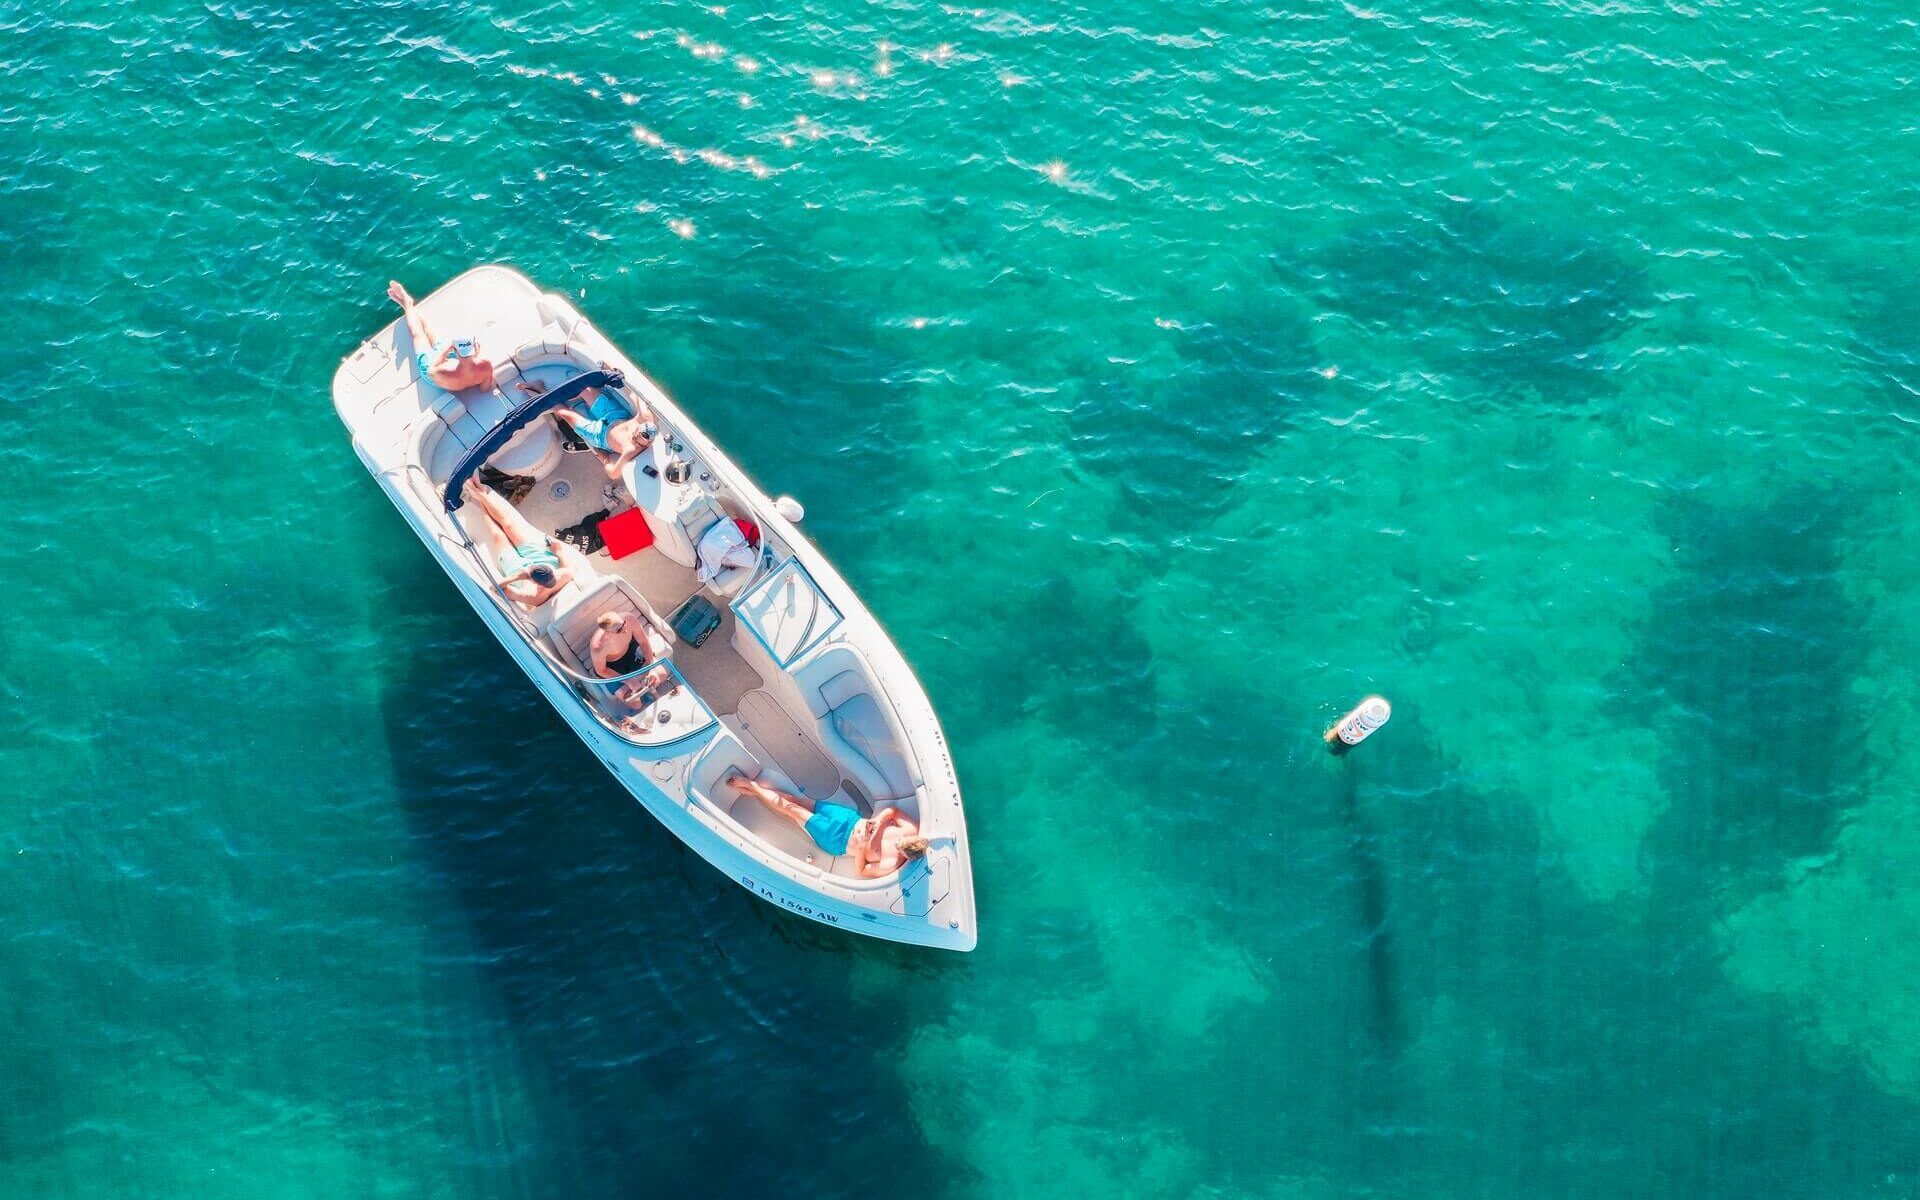 People lounging on a boat in the sun on clear, turquoise blue water